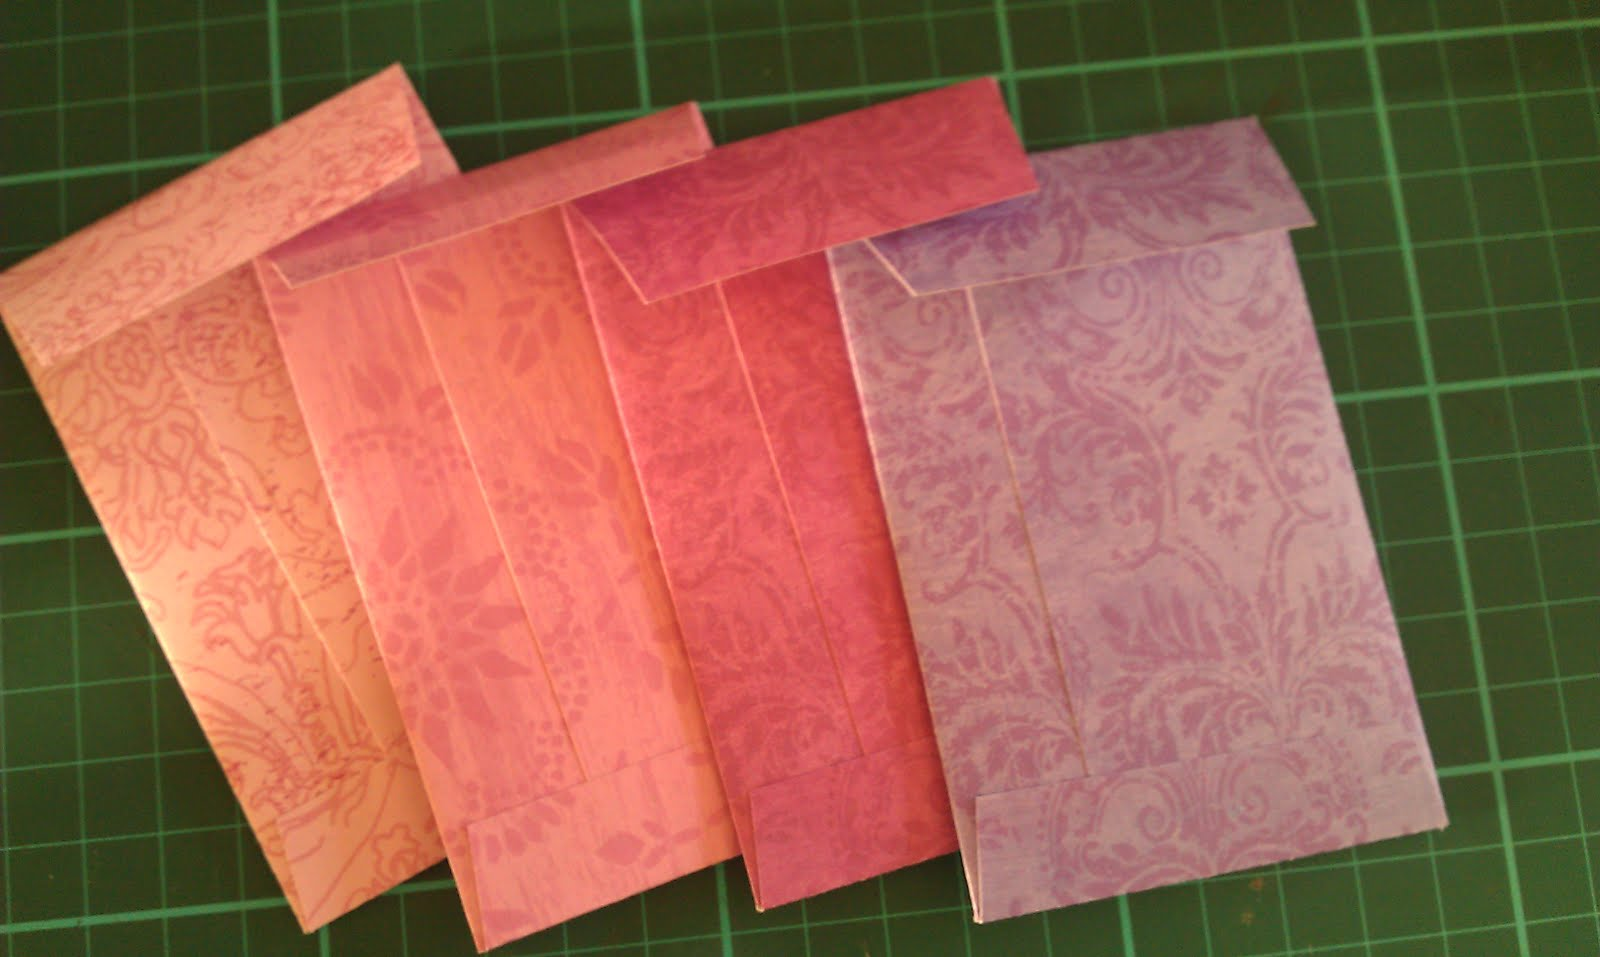 Scrapbook paper envelope - This Is My Favourite Set Below Made Using Metallic Scrapbook Paper The Paper Has The Loveliest Texture And Feel Just The Right Weight For Envelopes